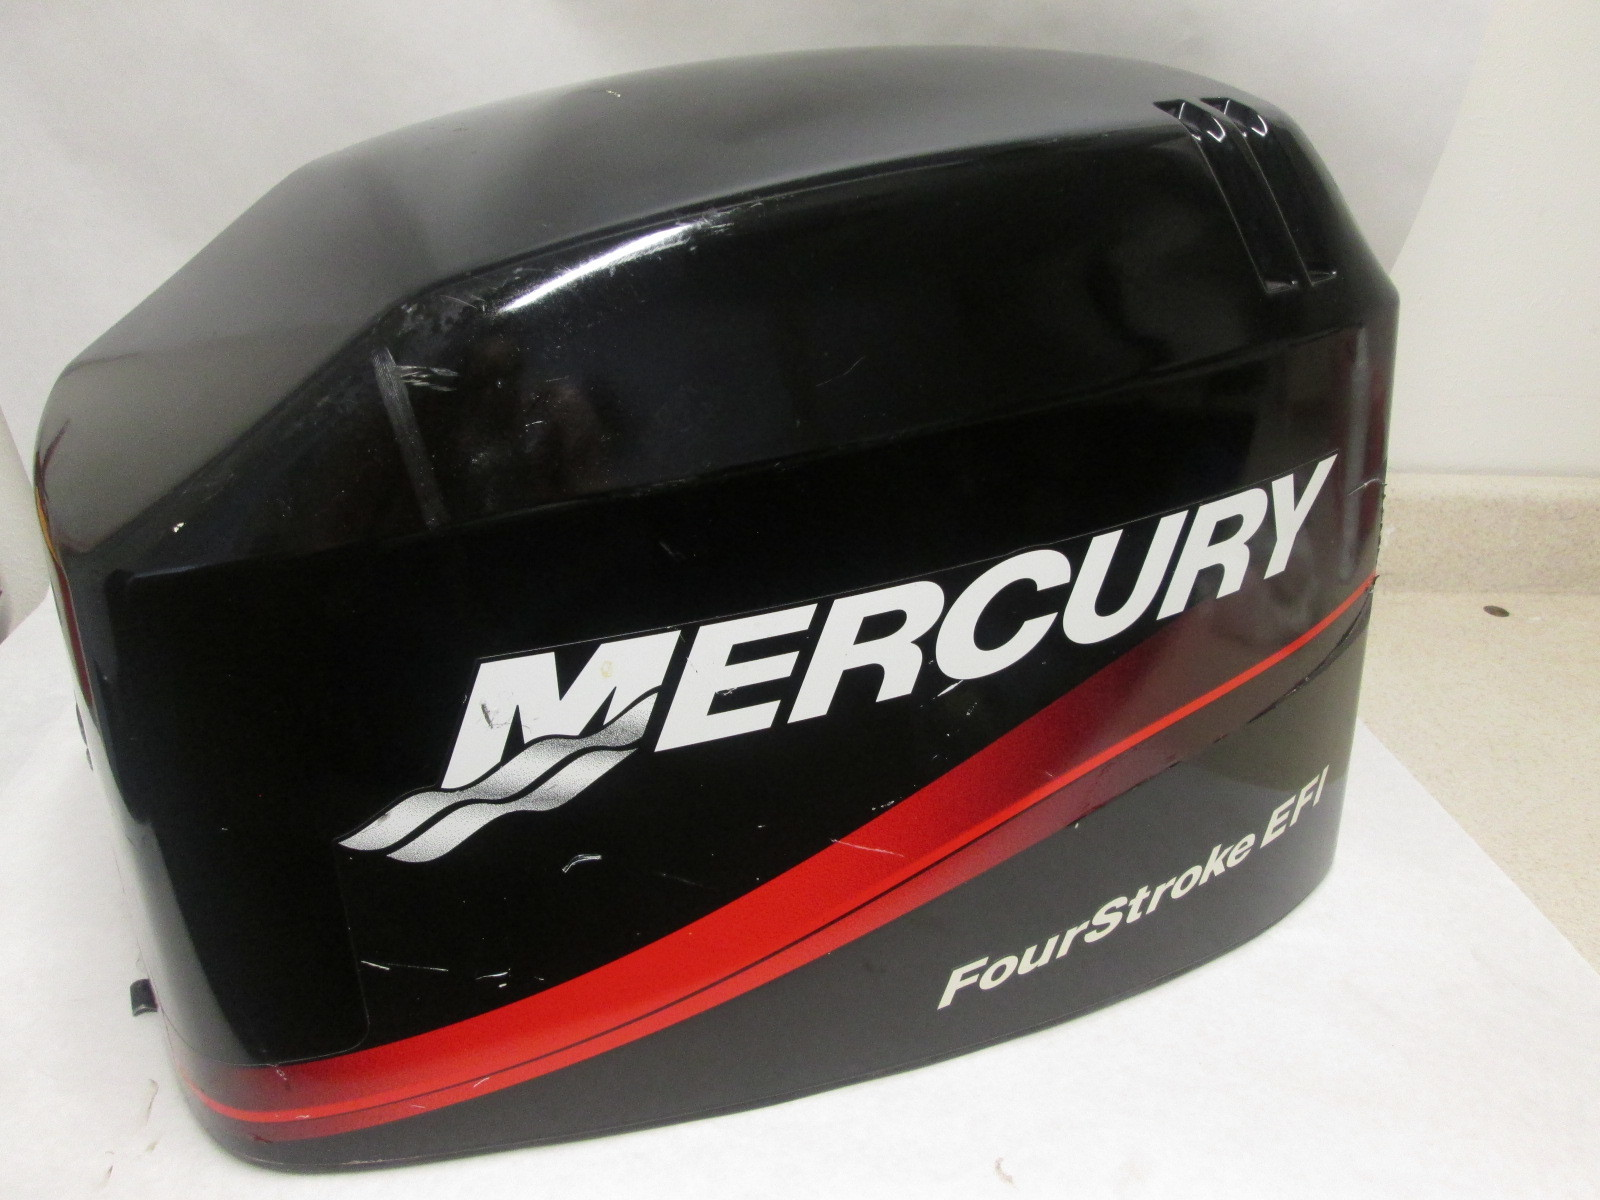 4019 825239t 3 upper top cowl mercury 4 stroke outboard 40 for Mercury outboard motor cowling